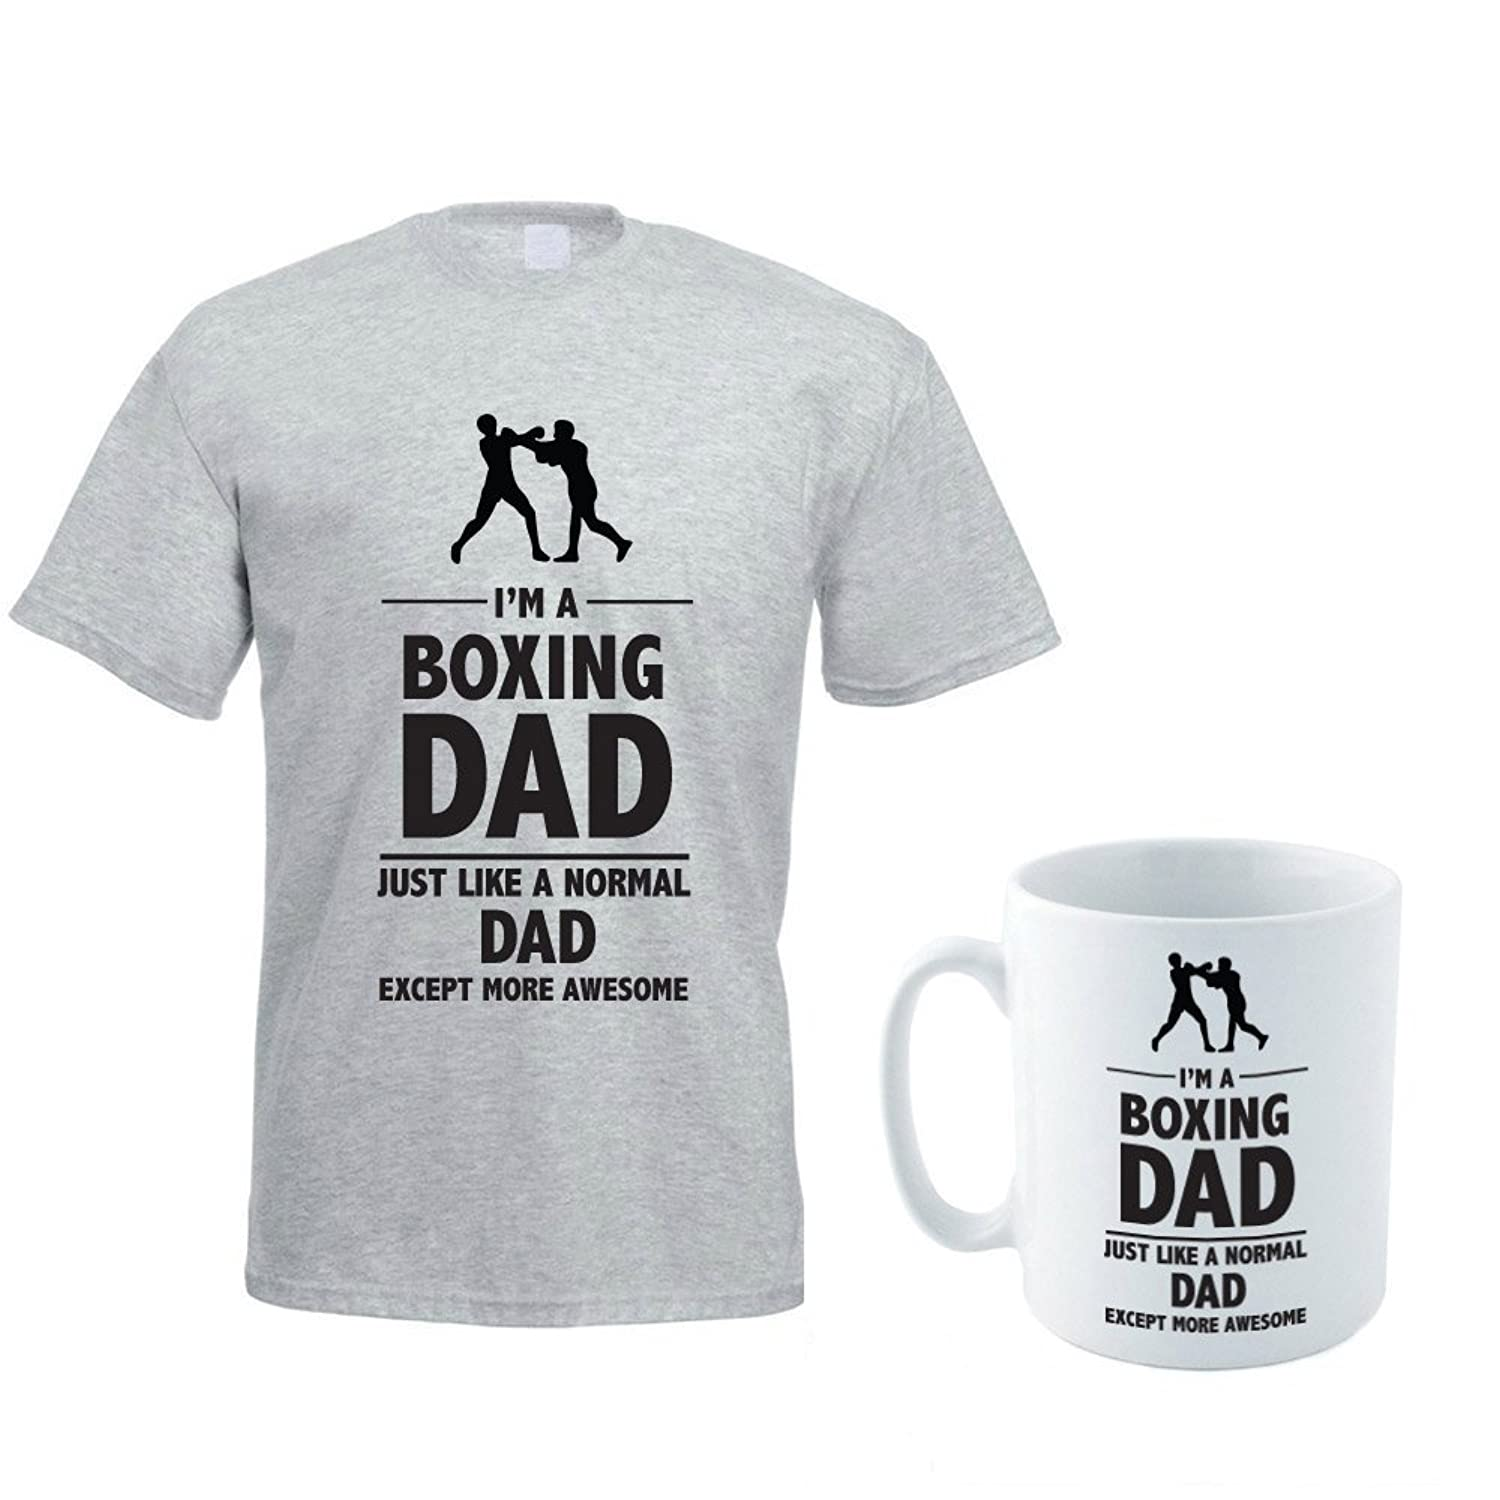 I'M A BOXING DAD - Dad / Daddy / Funny / Novelty Gift Idea / Men's T-shirt And Ceramic Mug Gift Set